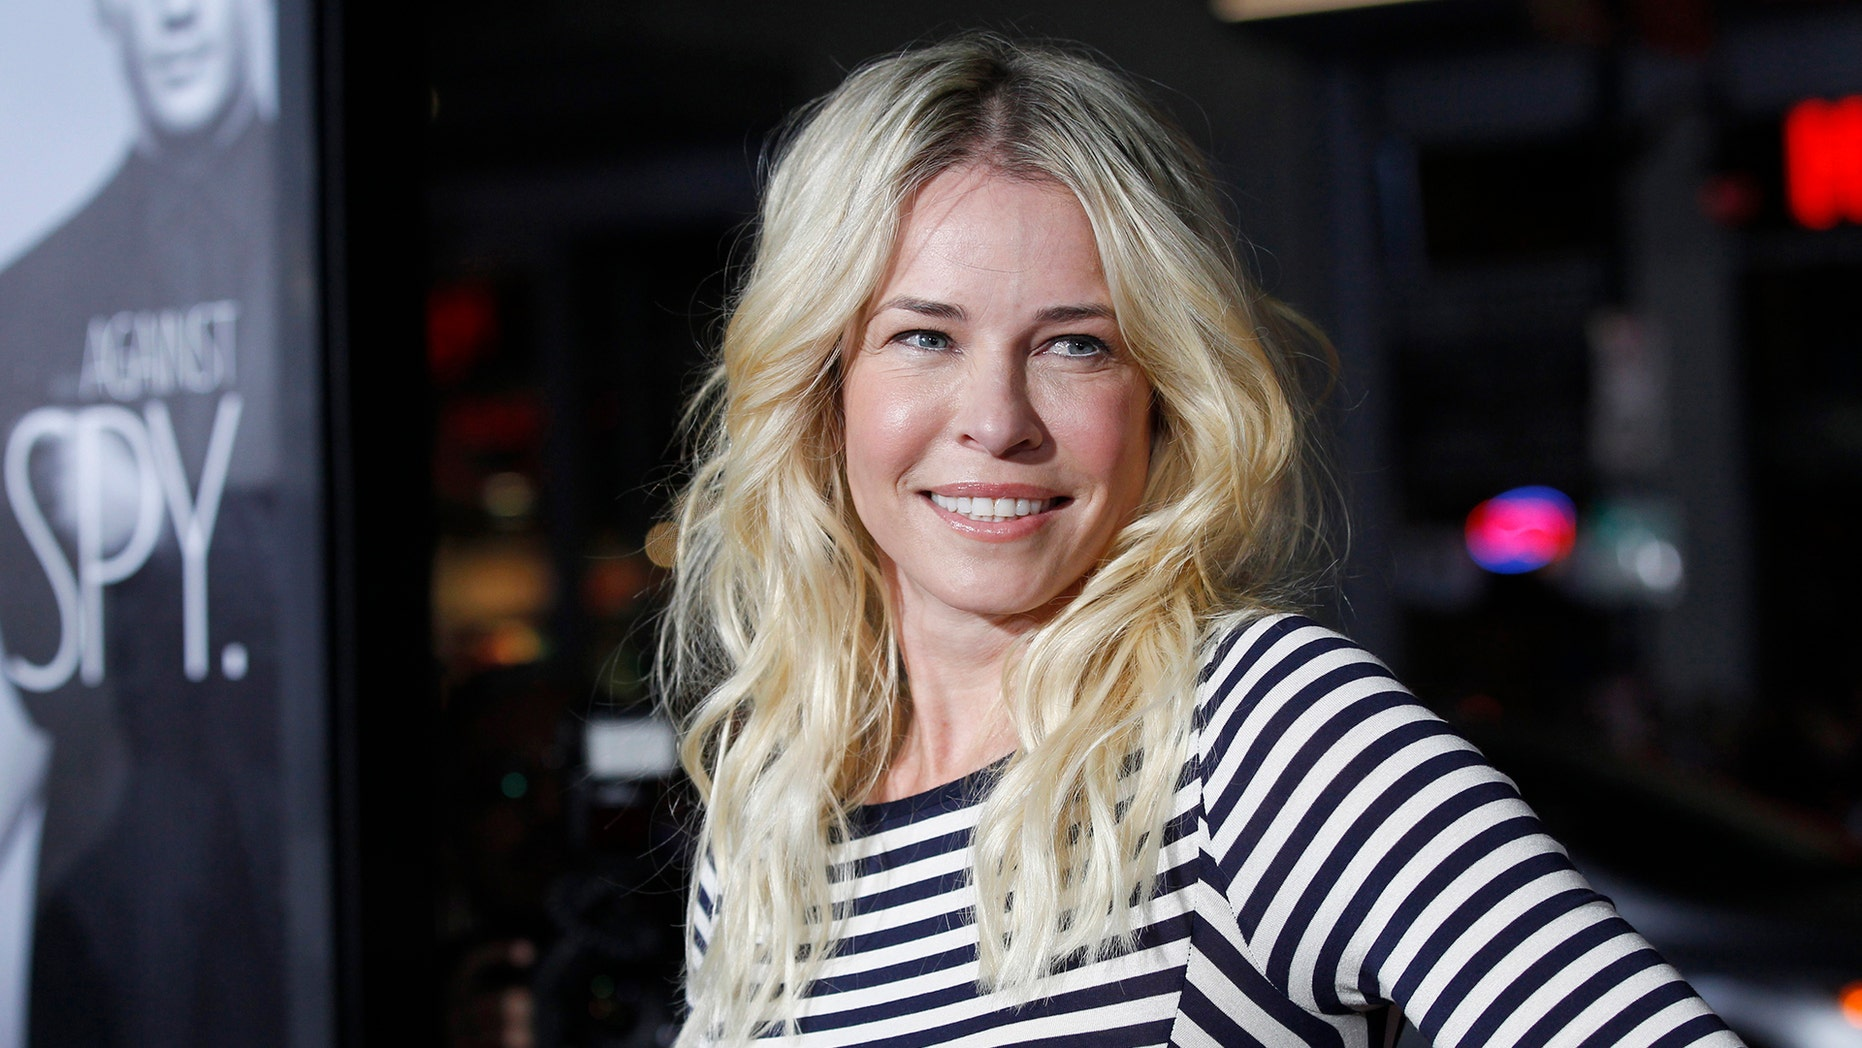 """Cast member Chelsea Handler poses at the premiere of """"This Means War"""" at the Grauman's Chinese theatre in Hollywood, California February 8, 2012. The movie opens in the U.S. on February 17.  REUTERS/Mario Anzuoni  (UNITED STATES-Tags: ENTERTAINMENT) - RTR2XIV7"""